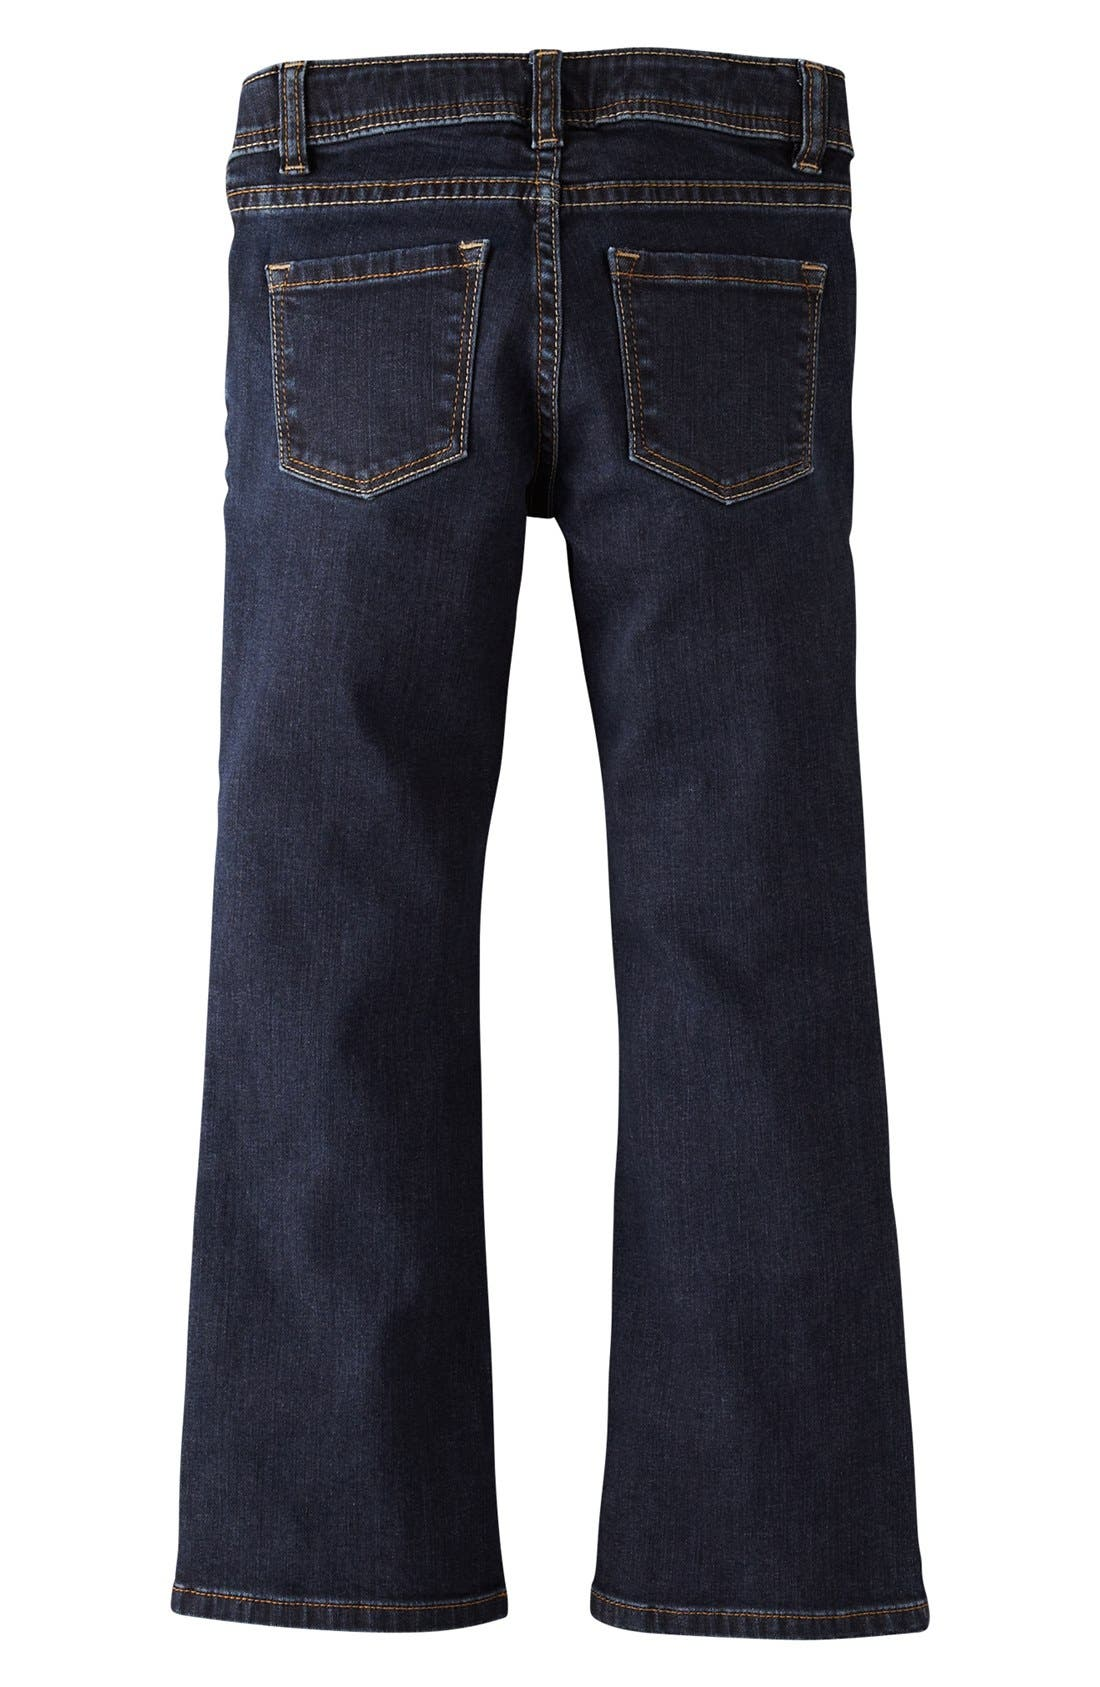 Main Image - Mini Boden Bootcut Jeans (Little Girls & Big Girls)